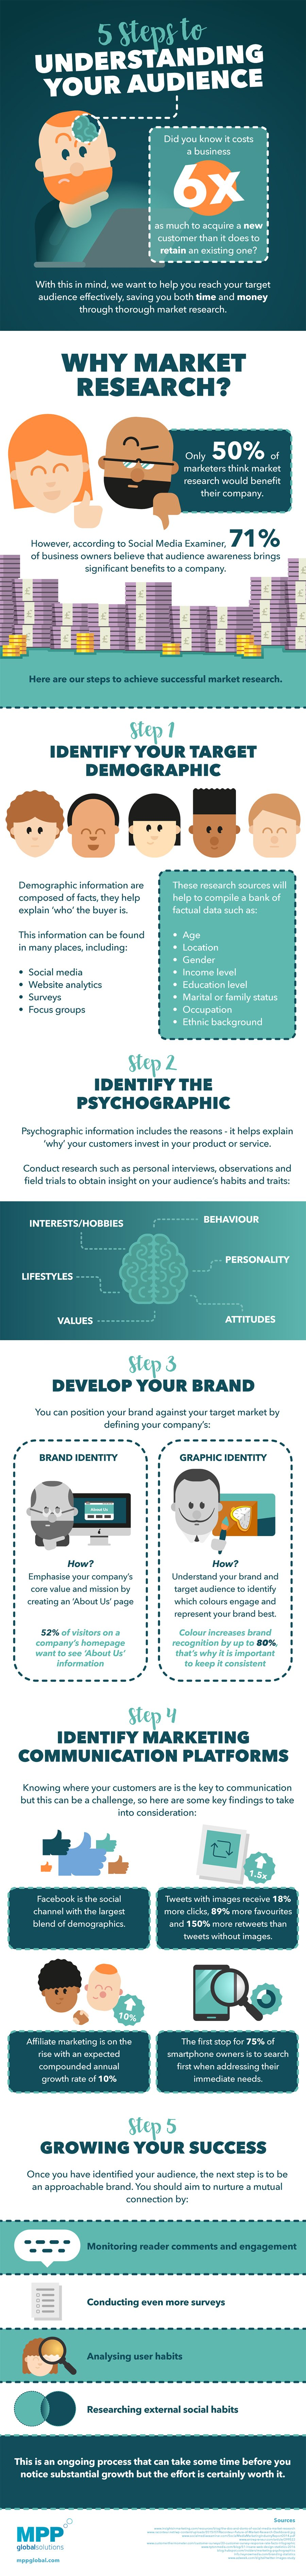 5 Steps to Understanding Your Audience [Infographic]